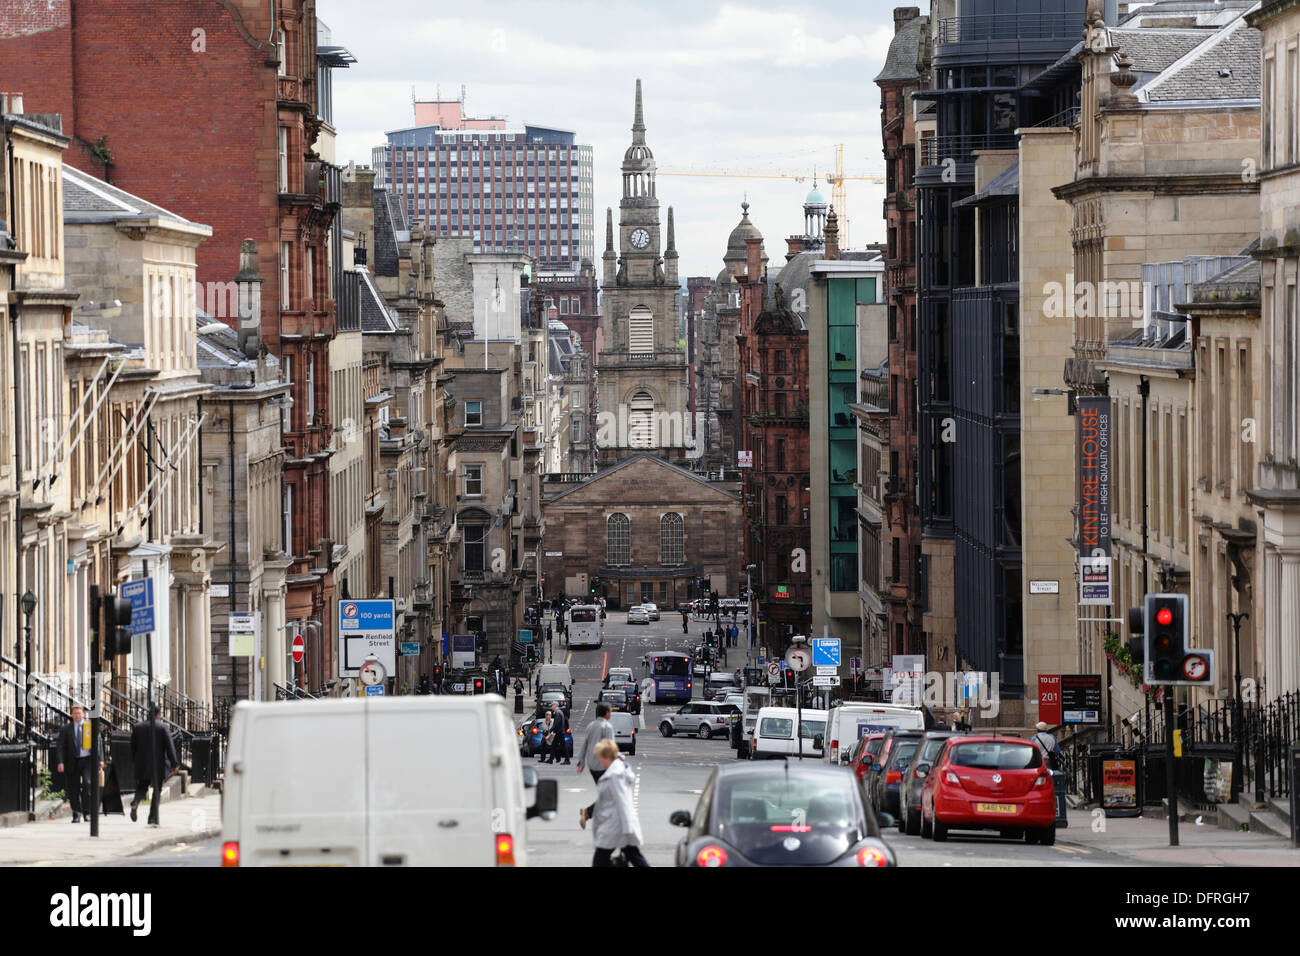 View looking East down West George Street towards St George's Tron Parish Church in Glasgow city centre, Scotland, UK - Stock Image